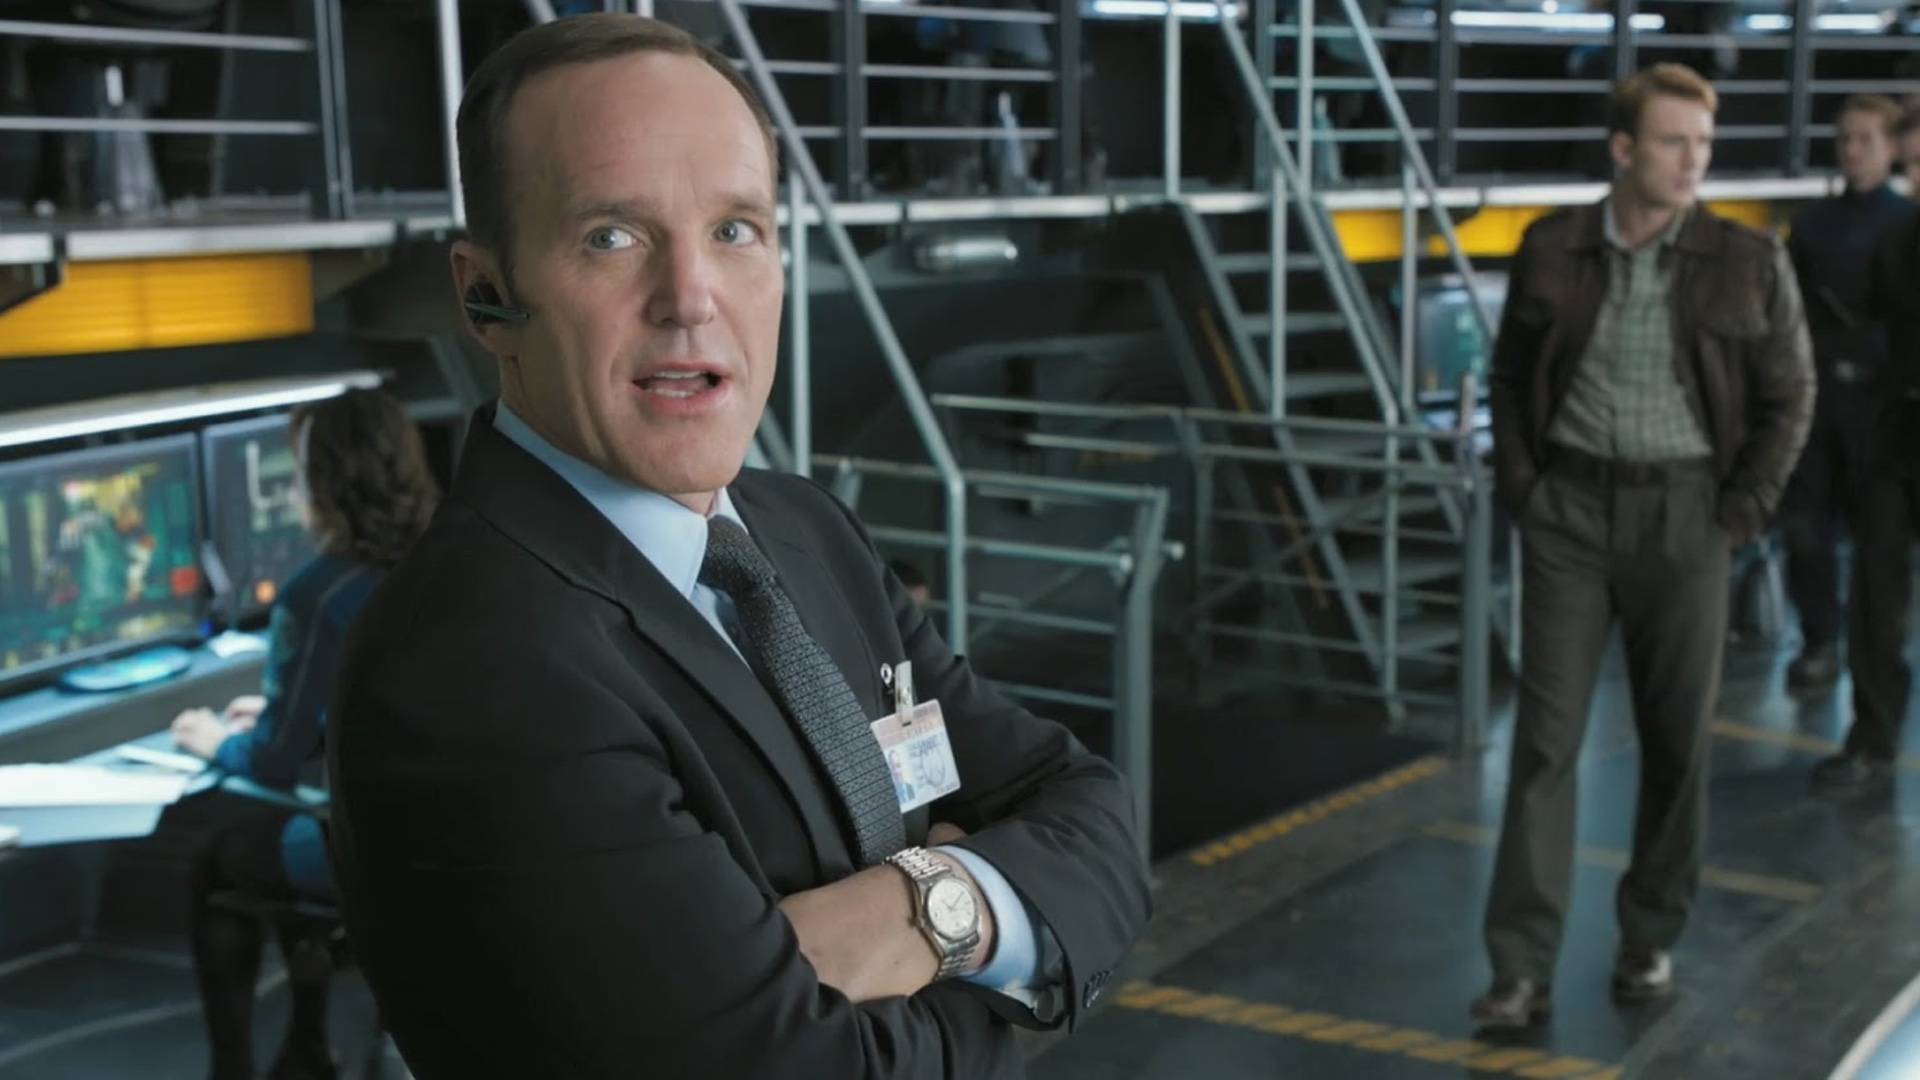 agent-coulson-will-be-the-new-guy-in-shield-in-captain-marvel-social.jpg